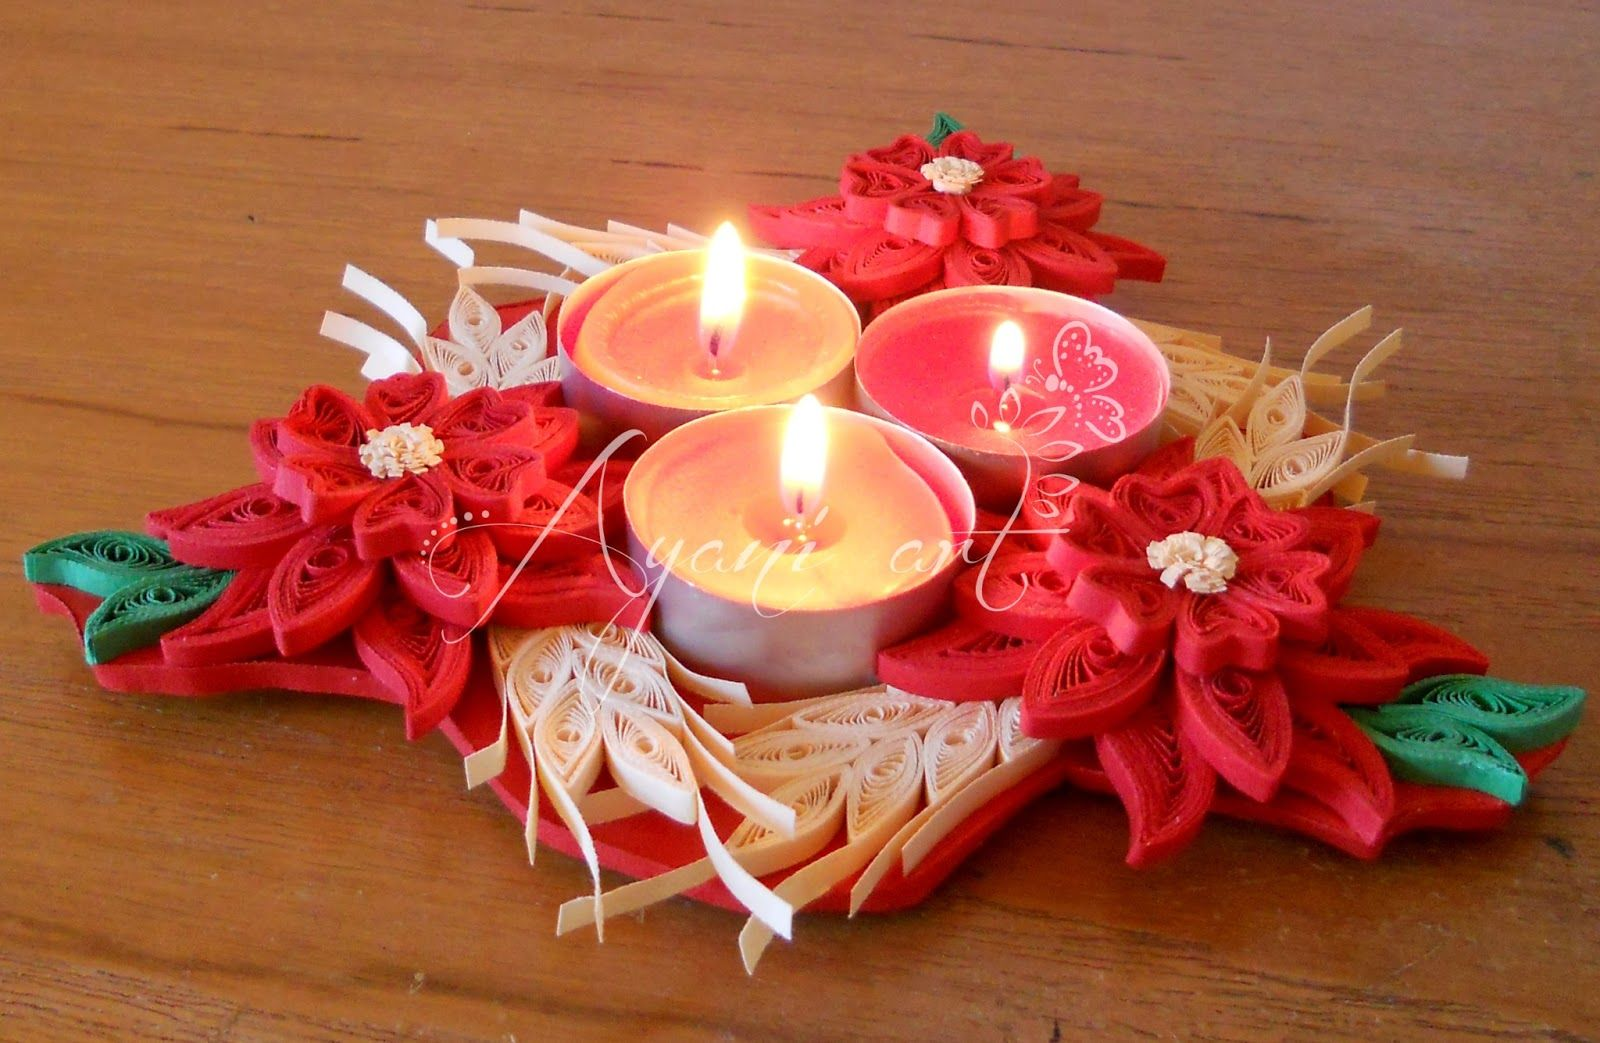 Tea light quilled table centerpiece - by: Ayani art - www ... - photo#42